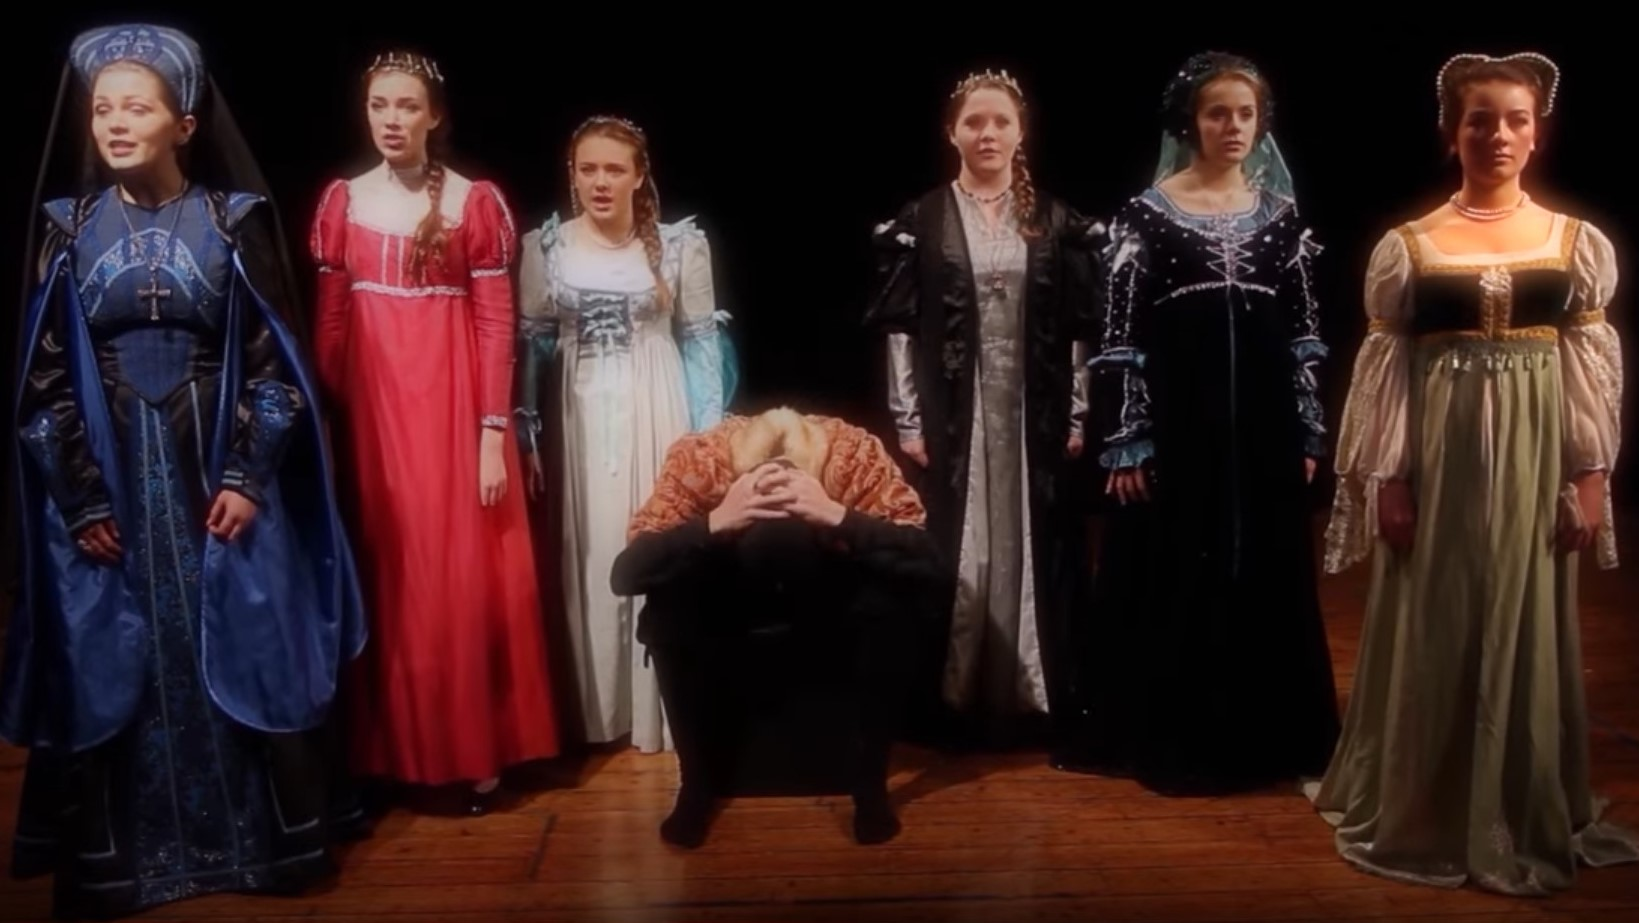 Henry VIII Six Wives' Song